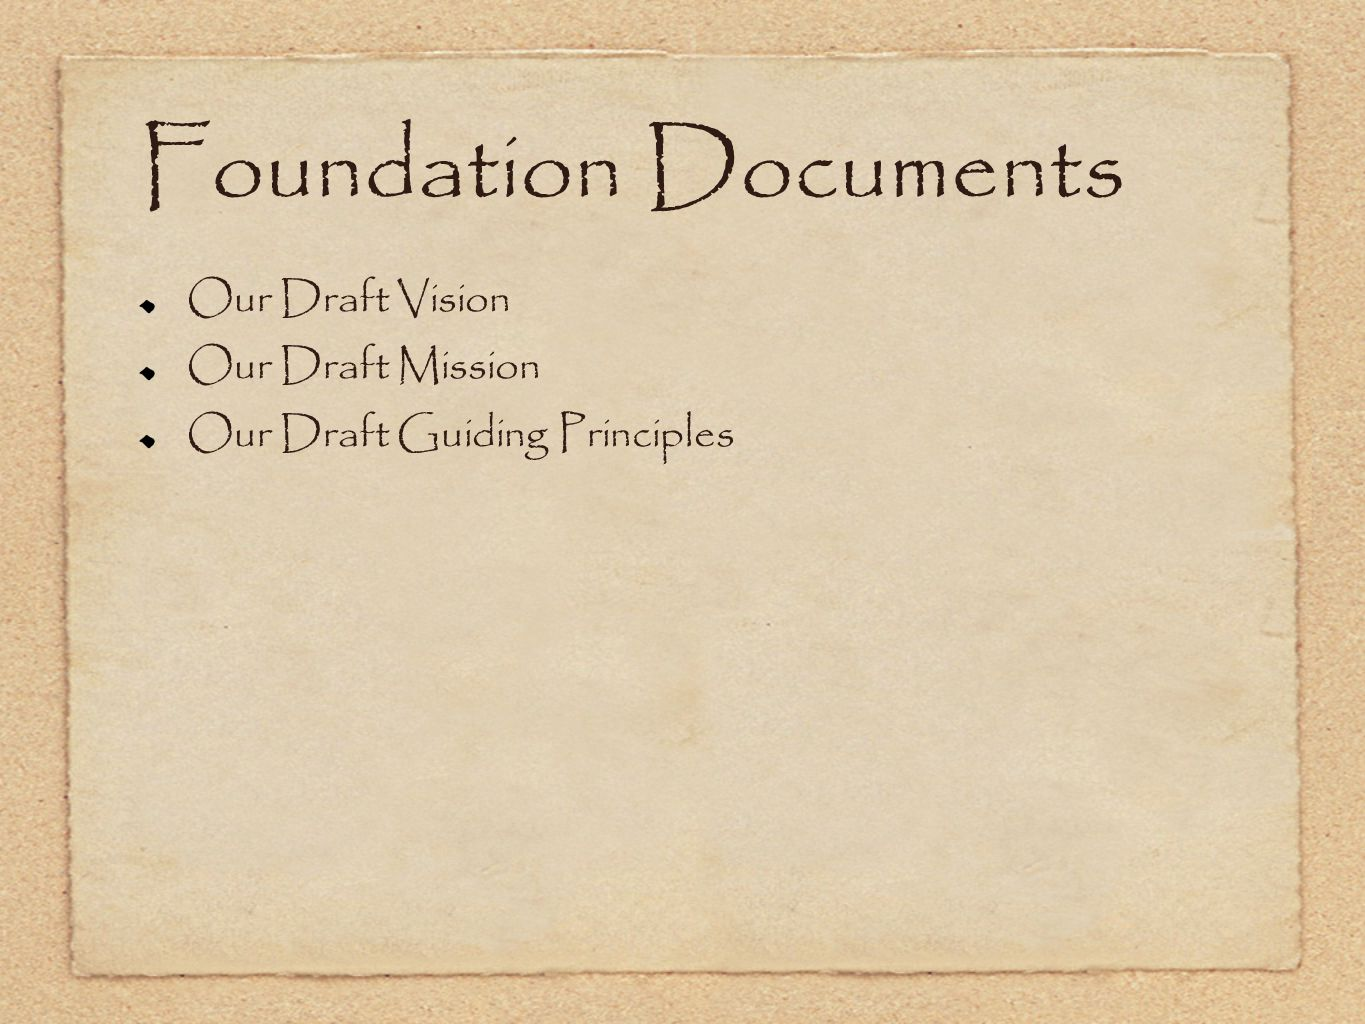 Foundation Documents Our Draft Vision Our Draft Mission Our Draft Guiding Principles